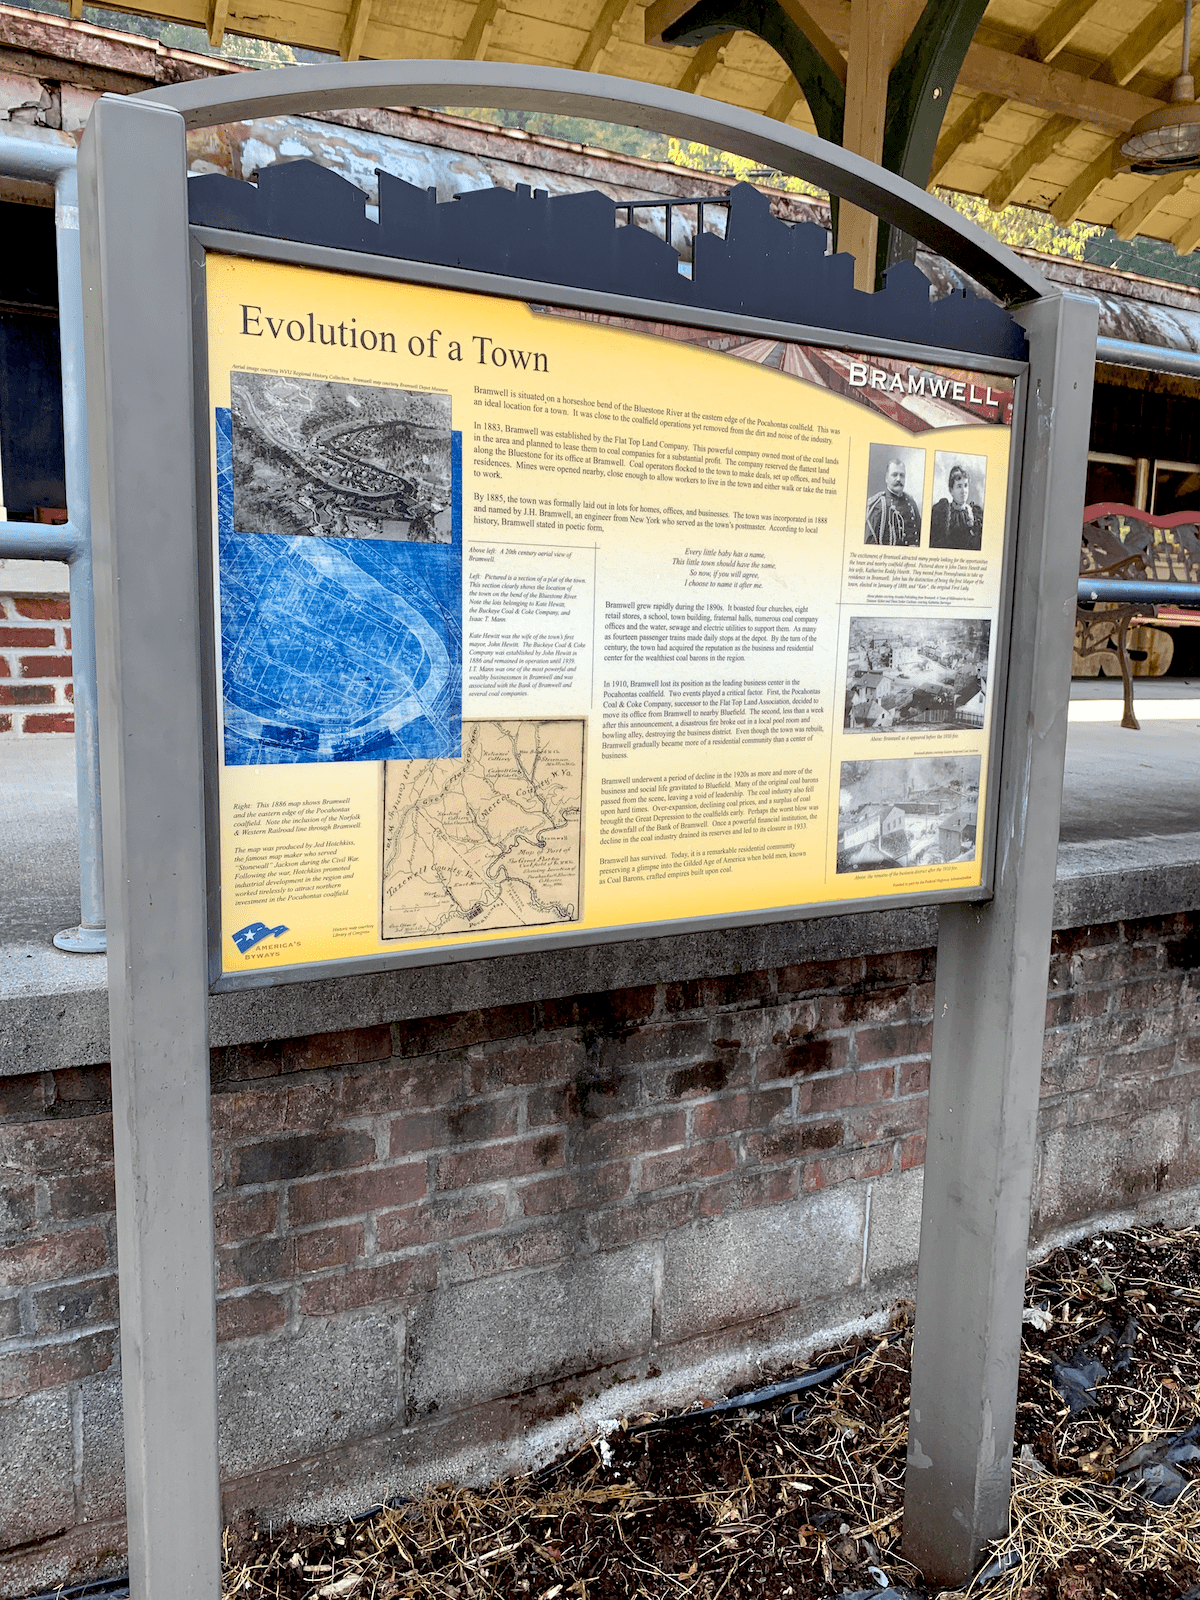 Information board entitled evolution of a town, outside train depot in Bramwell, WV